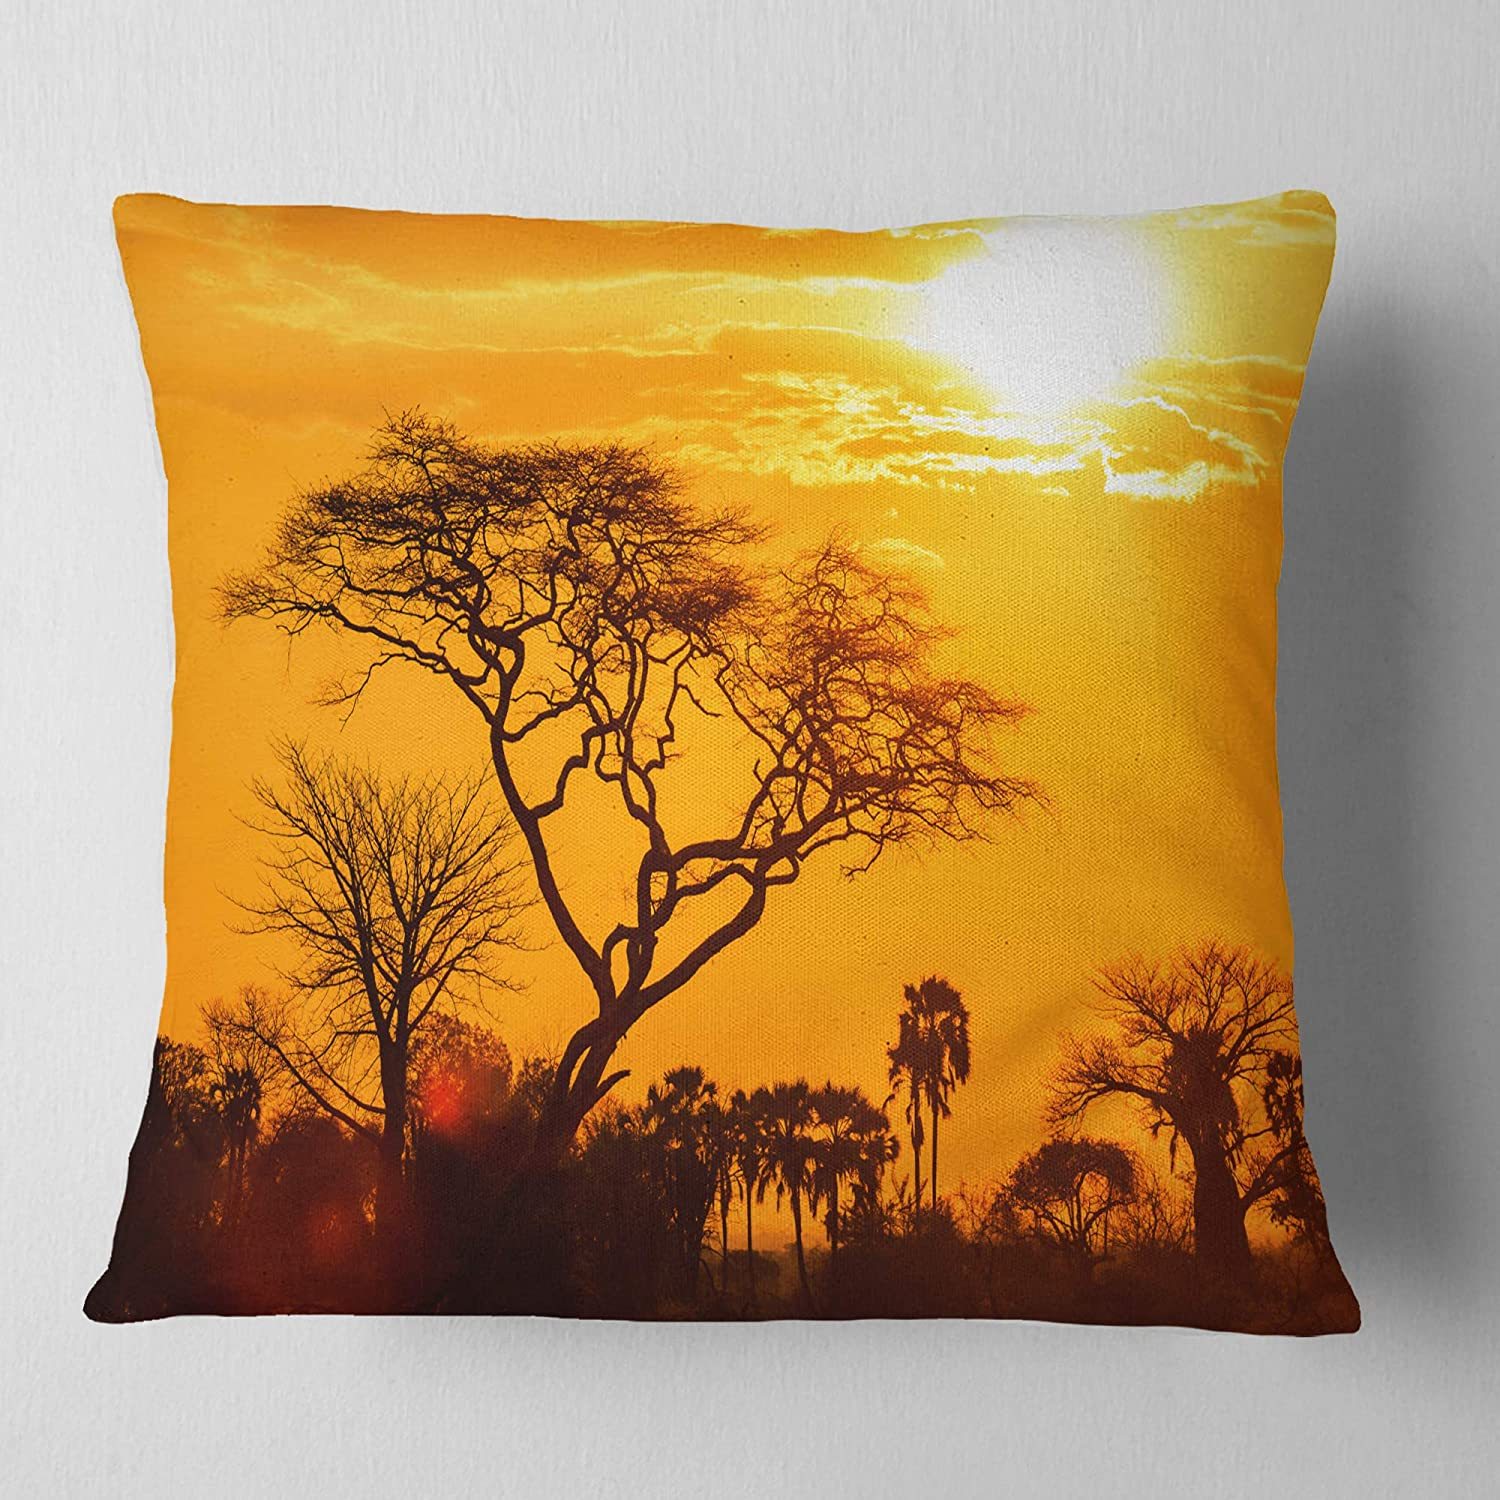 x 26 in Sofa Throw Pillow 26 in in Designart CU10884-26-26 Orange Glow of African Sunset Landscape Printed Cushion Cover for Living Room